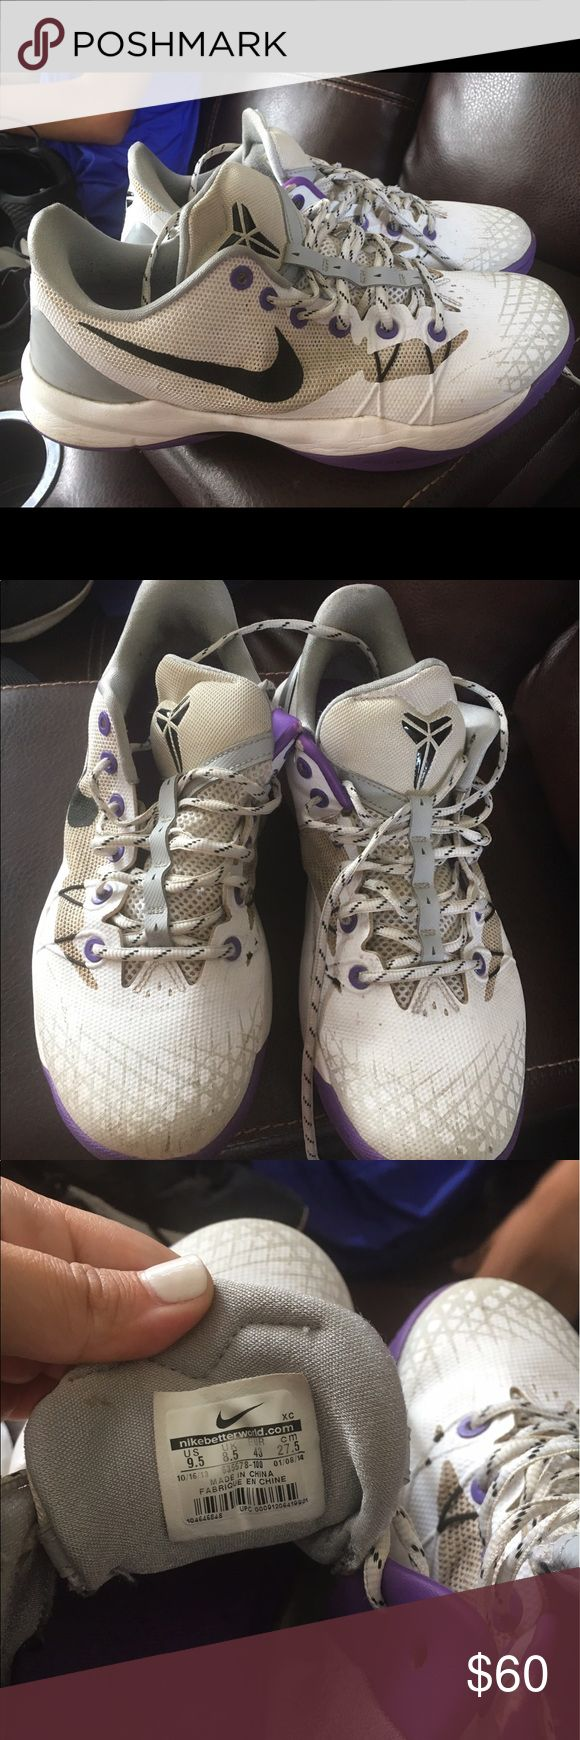 Nike Kobe venomenon 5 shoes Worn a handful of times and regular wear. Great bottom grips still Nike Shoes Athletic Shoes